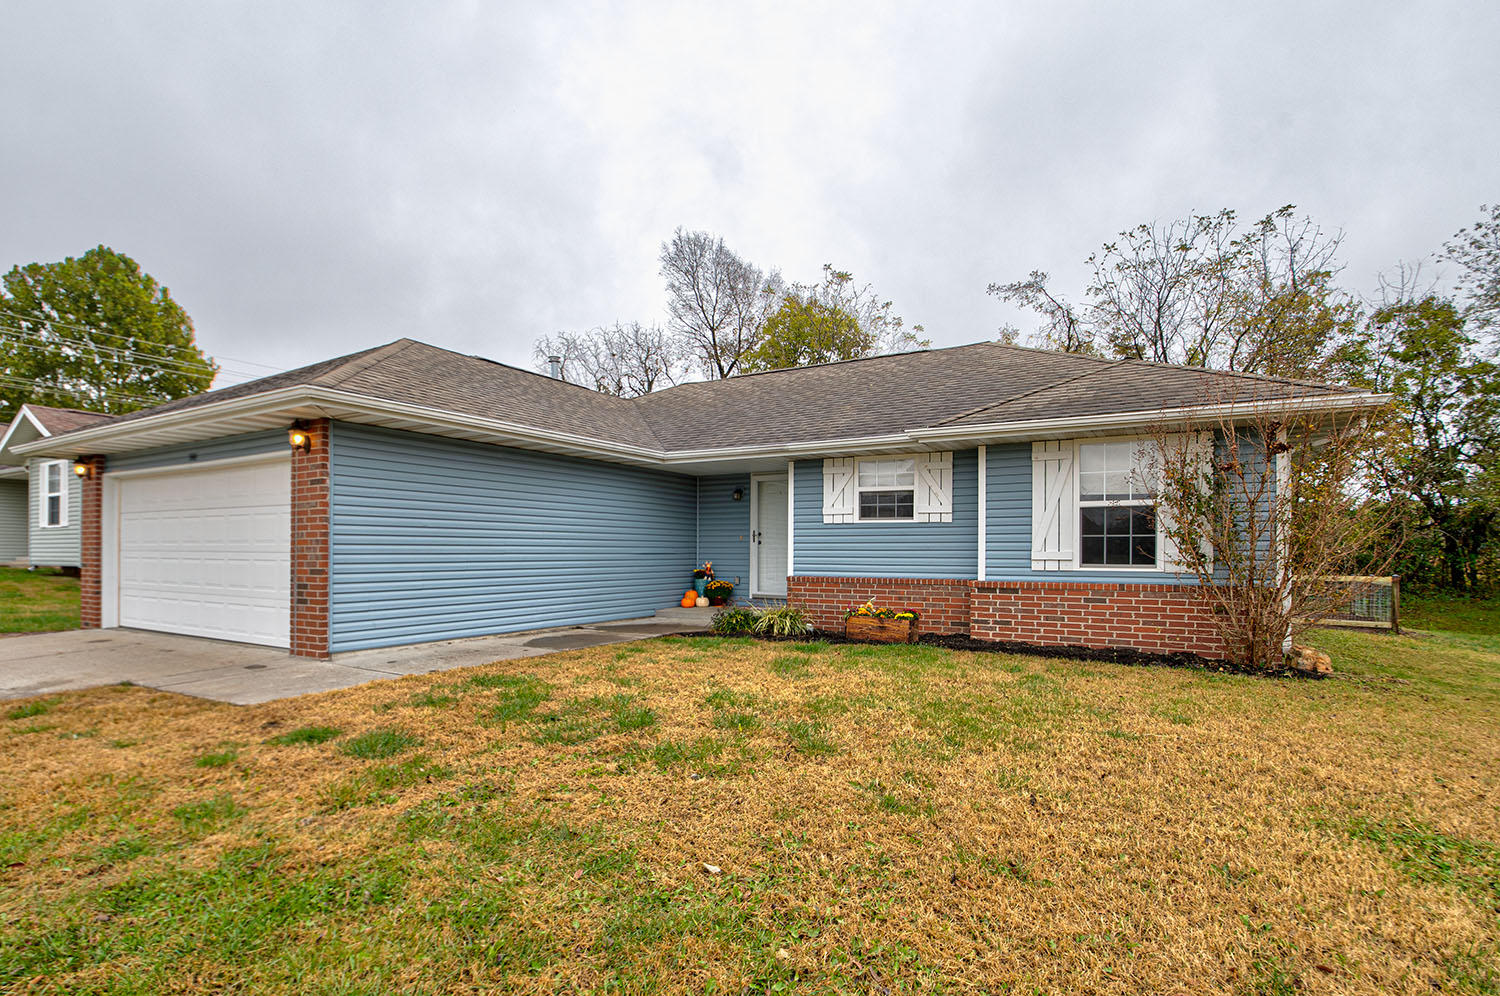 586 Texas Avenue Republic, MO 65738